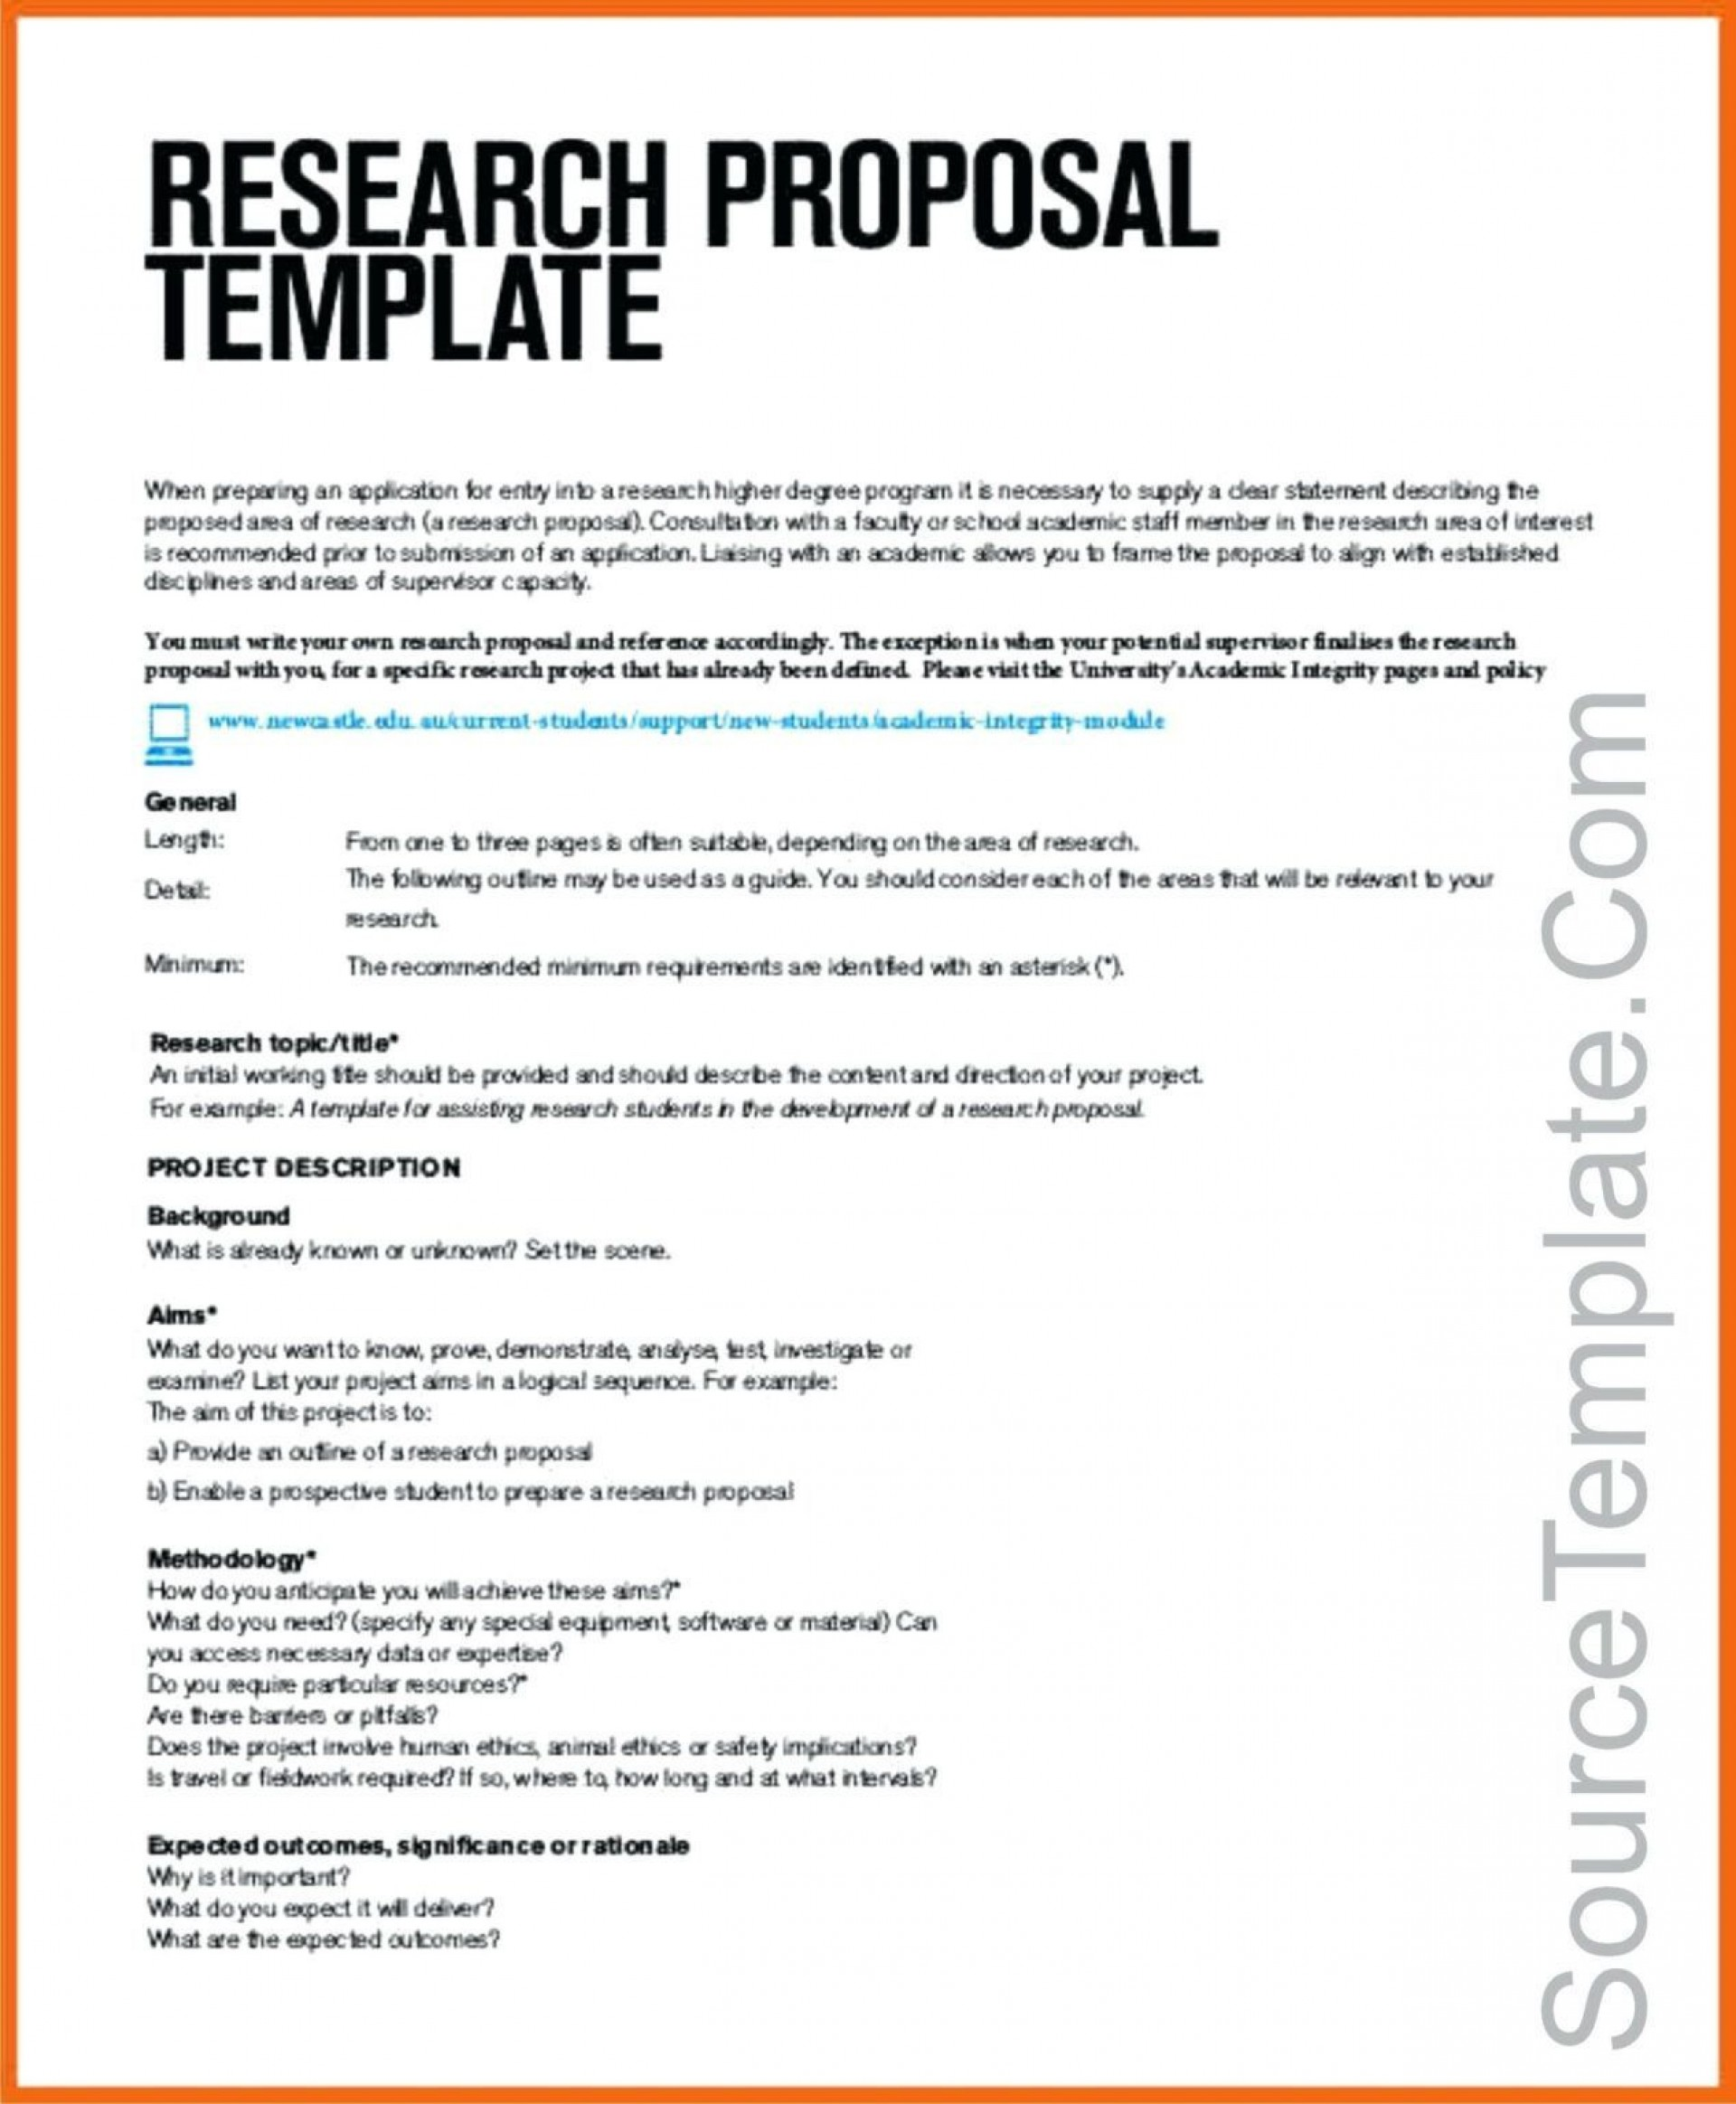 001 Amazing Research Project Proposal Template Word Image 1920